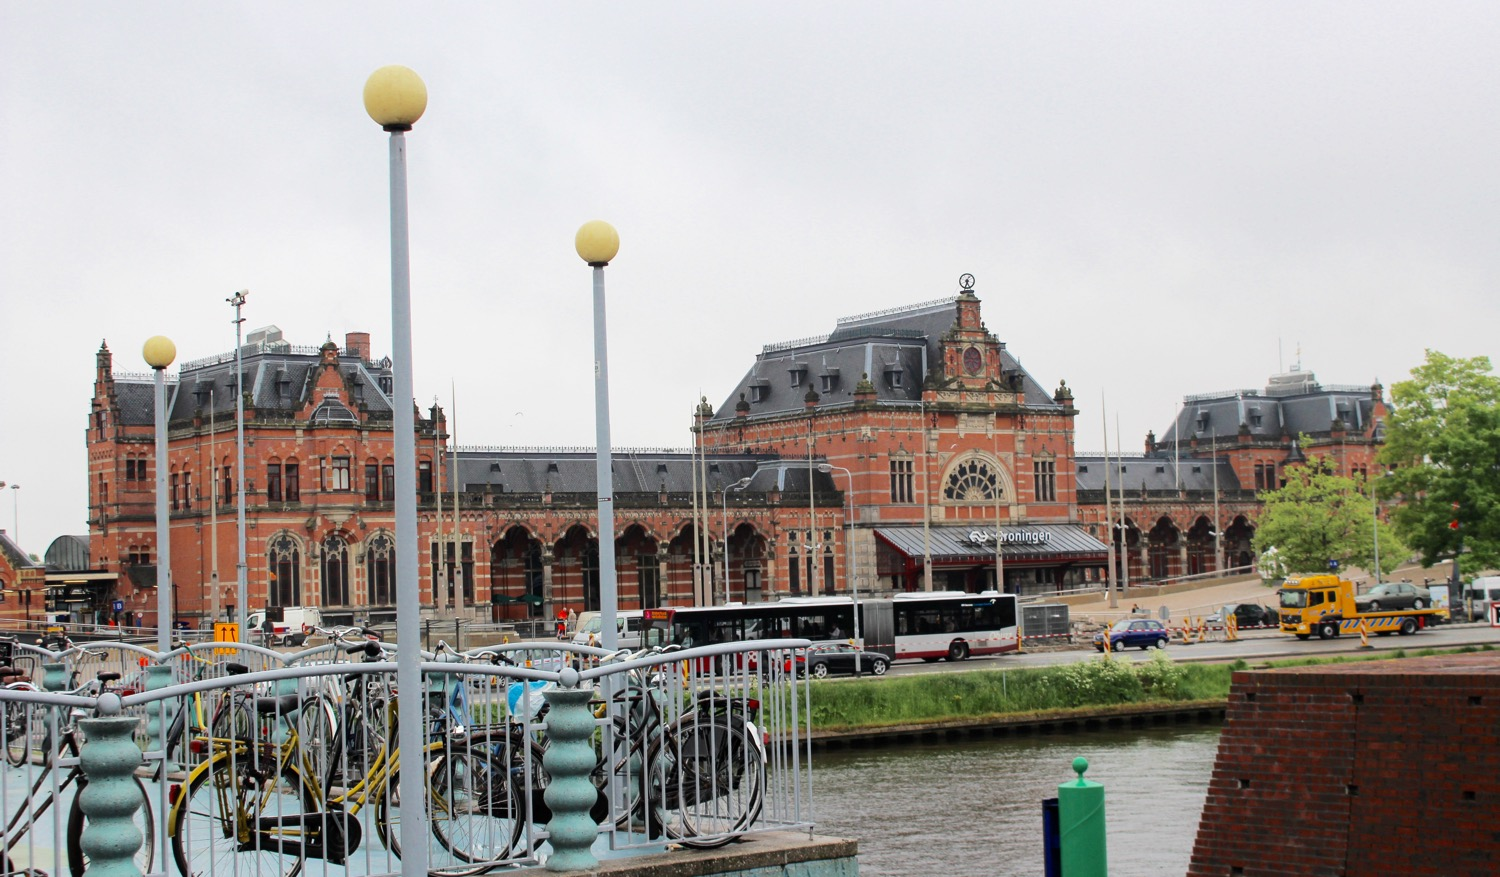 VIEW FROM THE GROENINGEN MUSEUM ACROSS THE CANAL TO THE FAMOUS TRAIN STATION